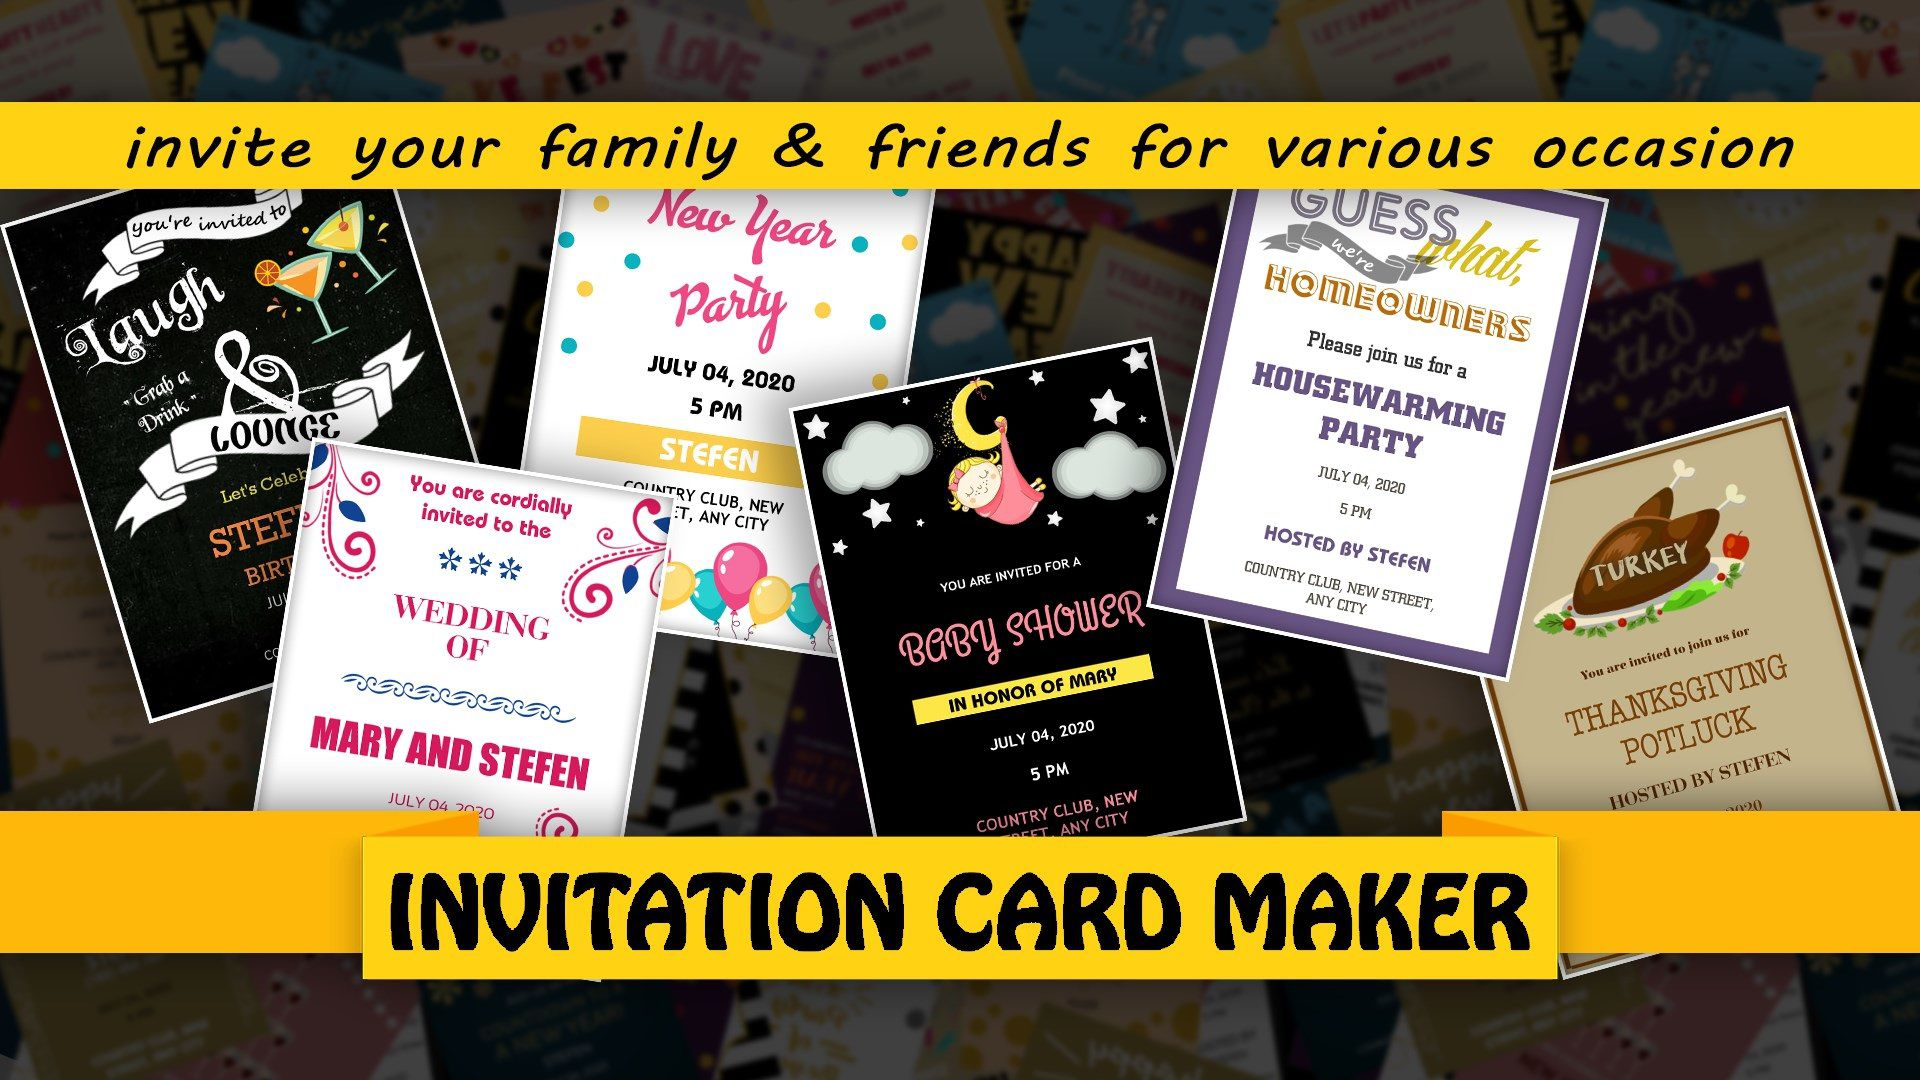 007 Fascinating Free Online Birthday Invitation Card Maker With Photo Sample  1stFull